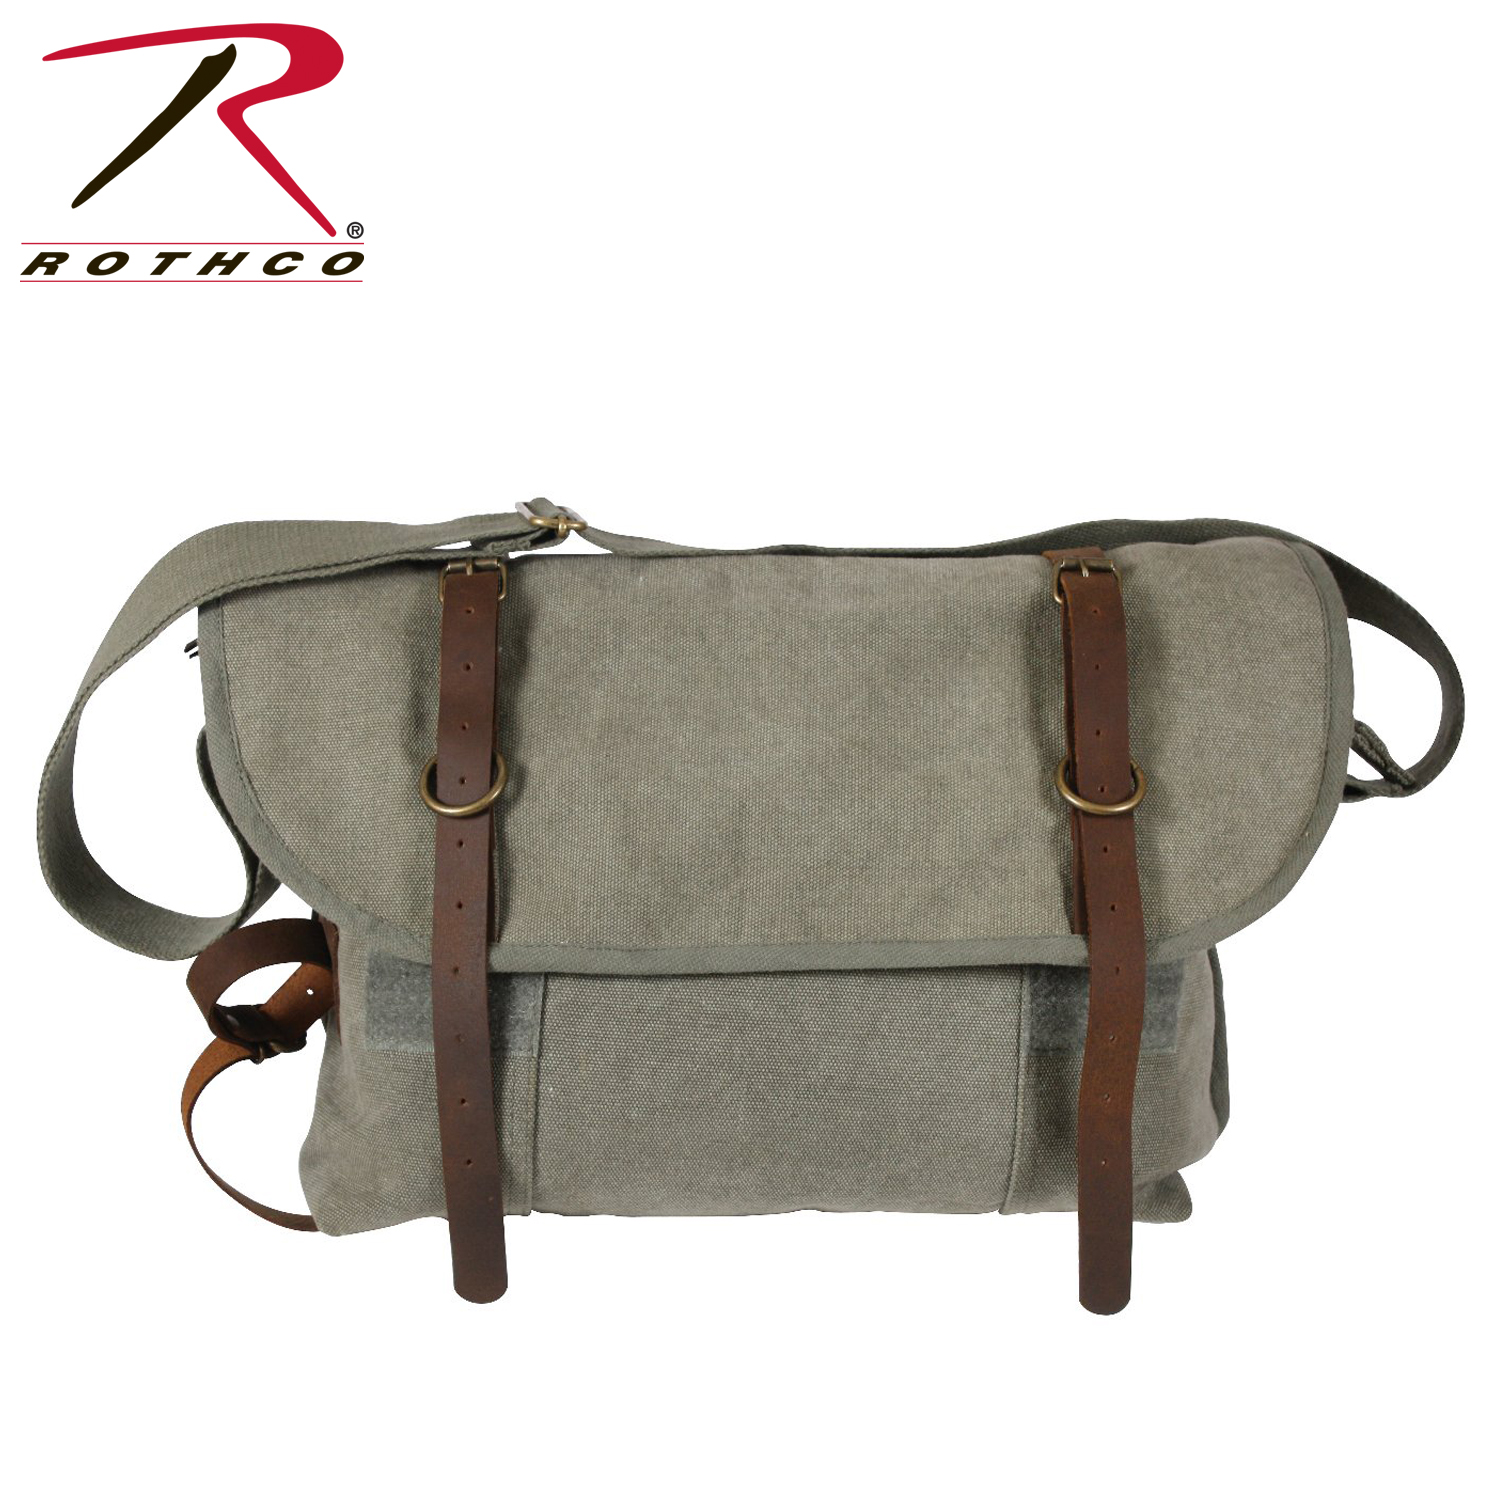 ff292247d308 Rothco Vintage Canvas Pathfinder Laptop Bag With Leather Accents